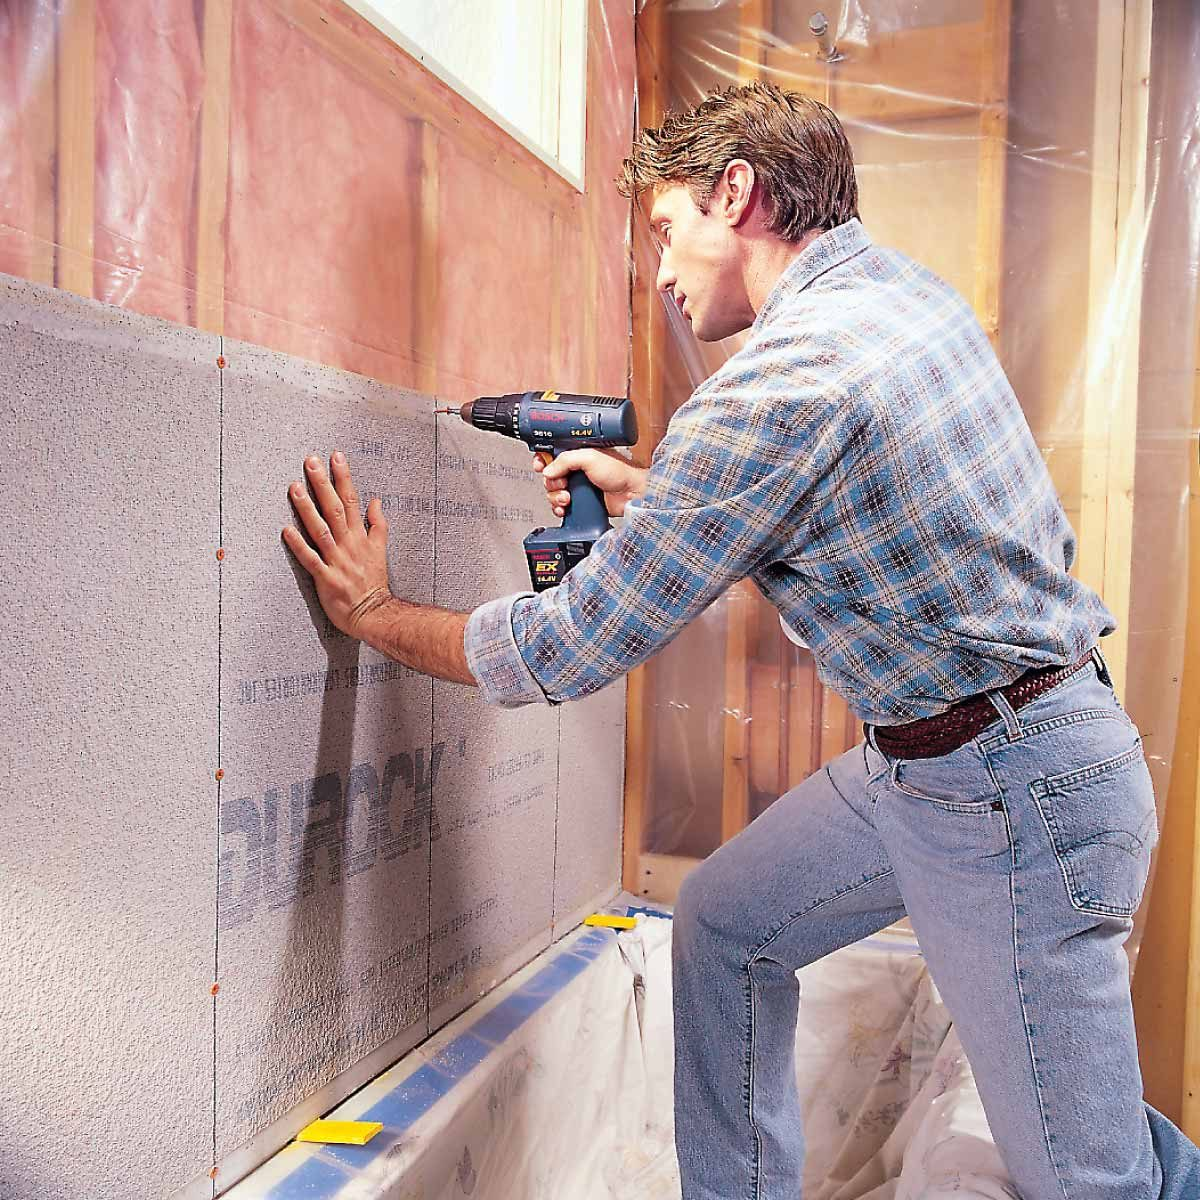 How To Install Cement Board For Tile Projects Family Handyman